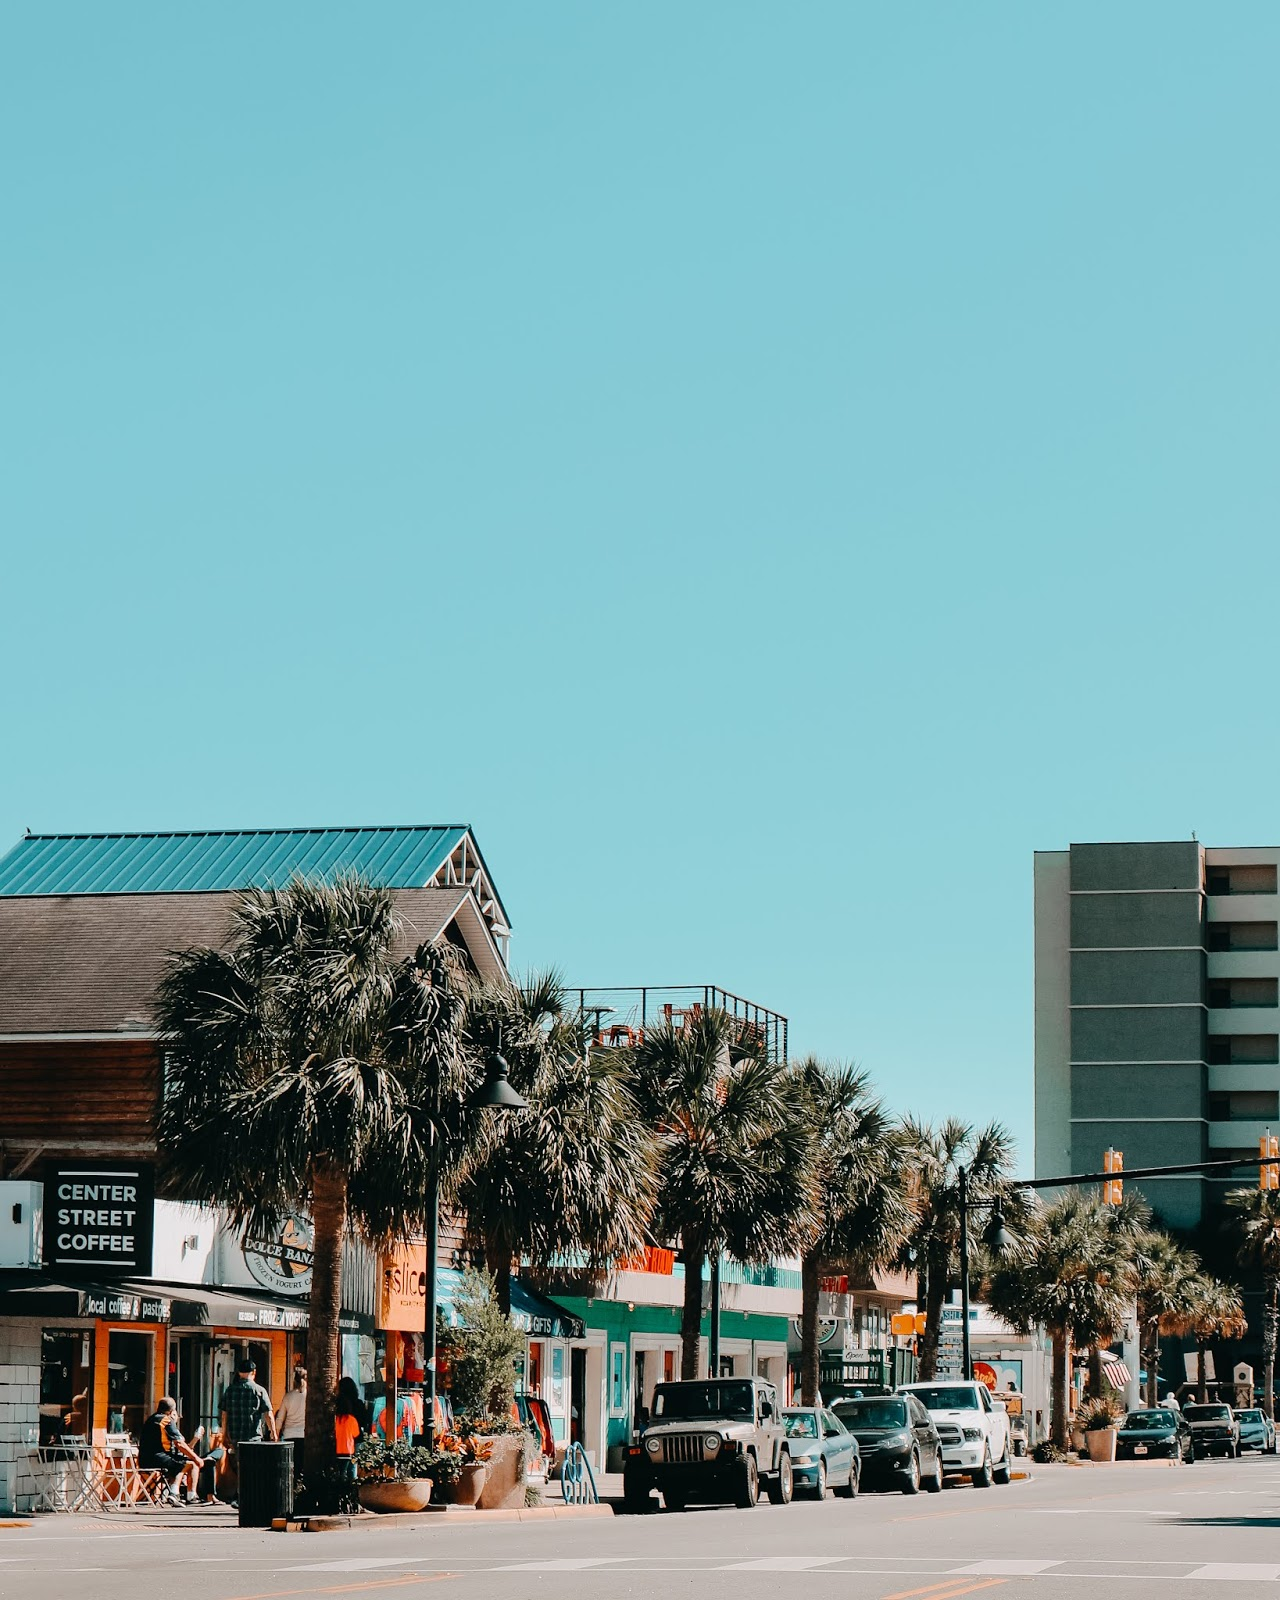 Falling In Love With Folly Beach, South Carolina - HollieAnnBowe